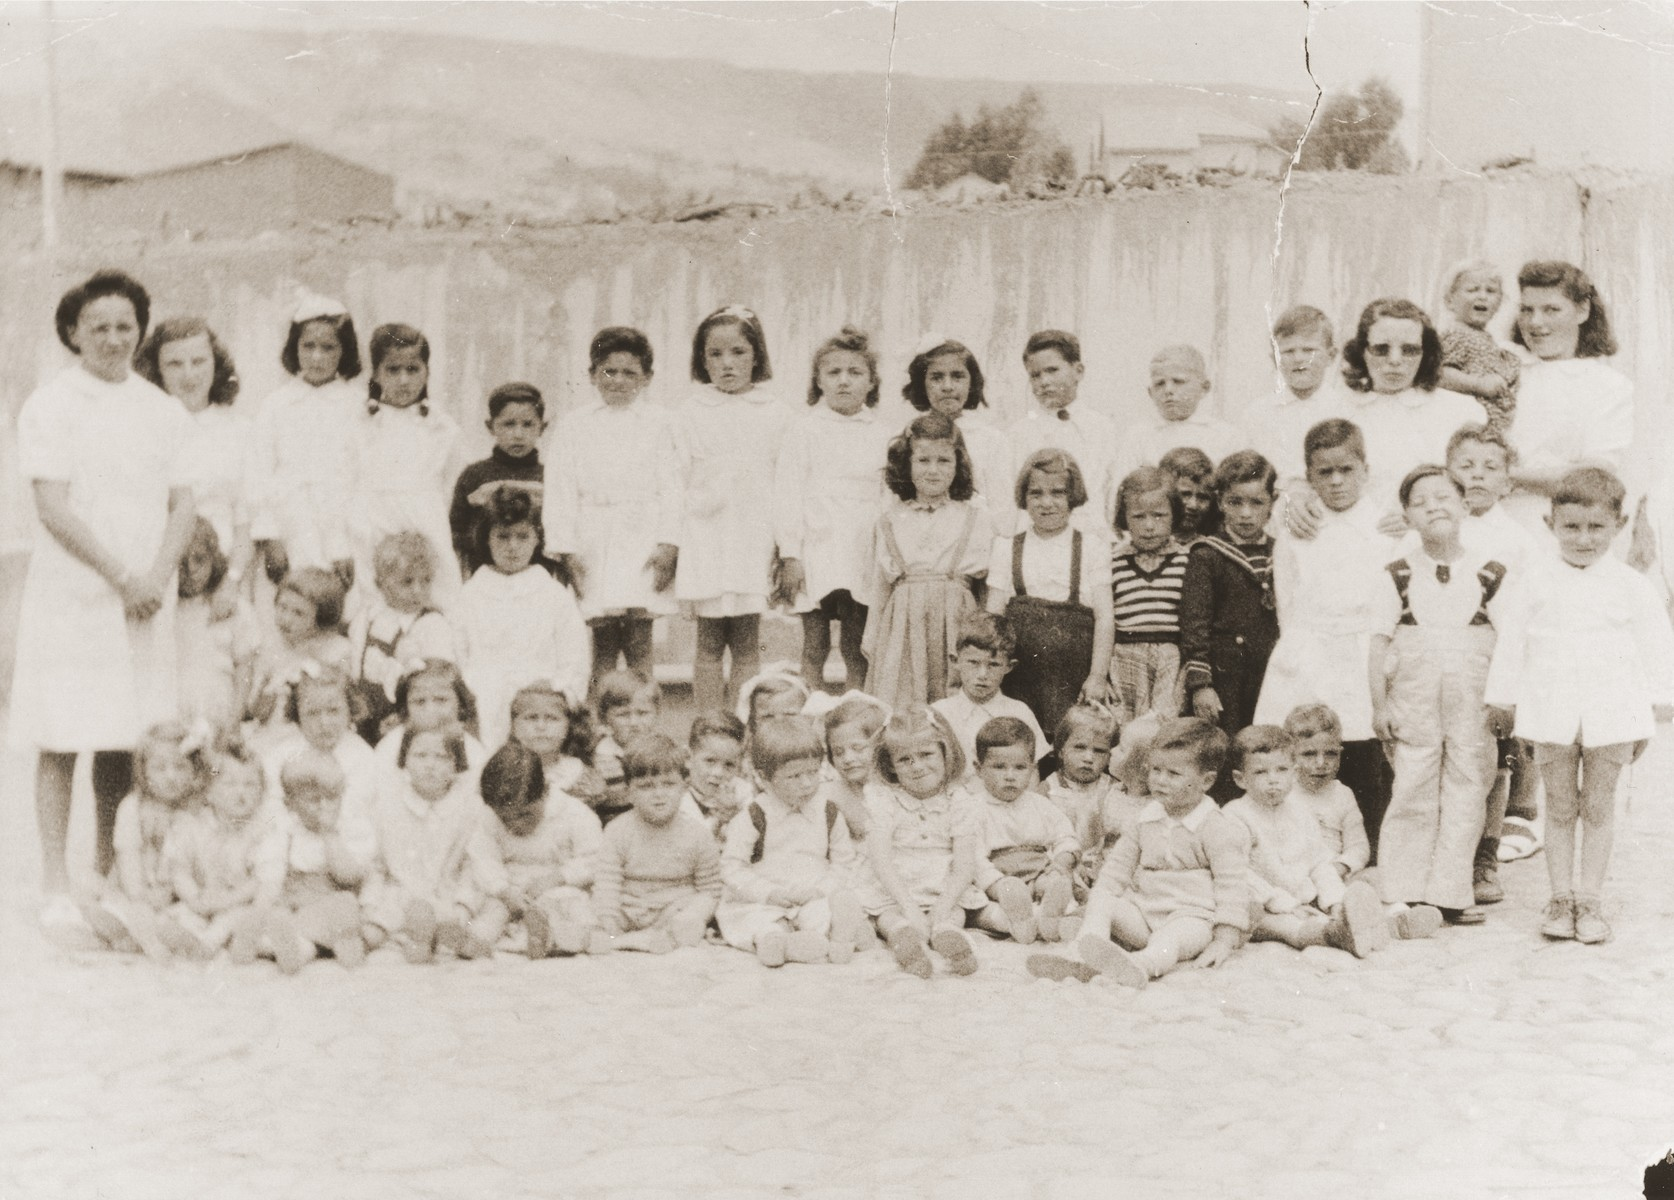 Kindergarten class at the Jewish Kinderheim in La Paz, Bolivia.  The Kinderheim was supported by funds from the JDC and SOPRO (Sociedad de protection immigrantes).  Leo Spitzer is pictured in the back row, (fourth from the right).